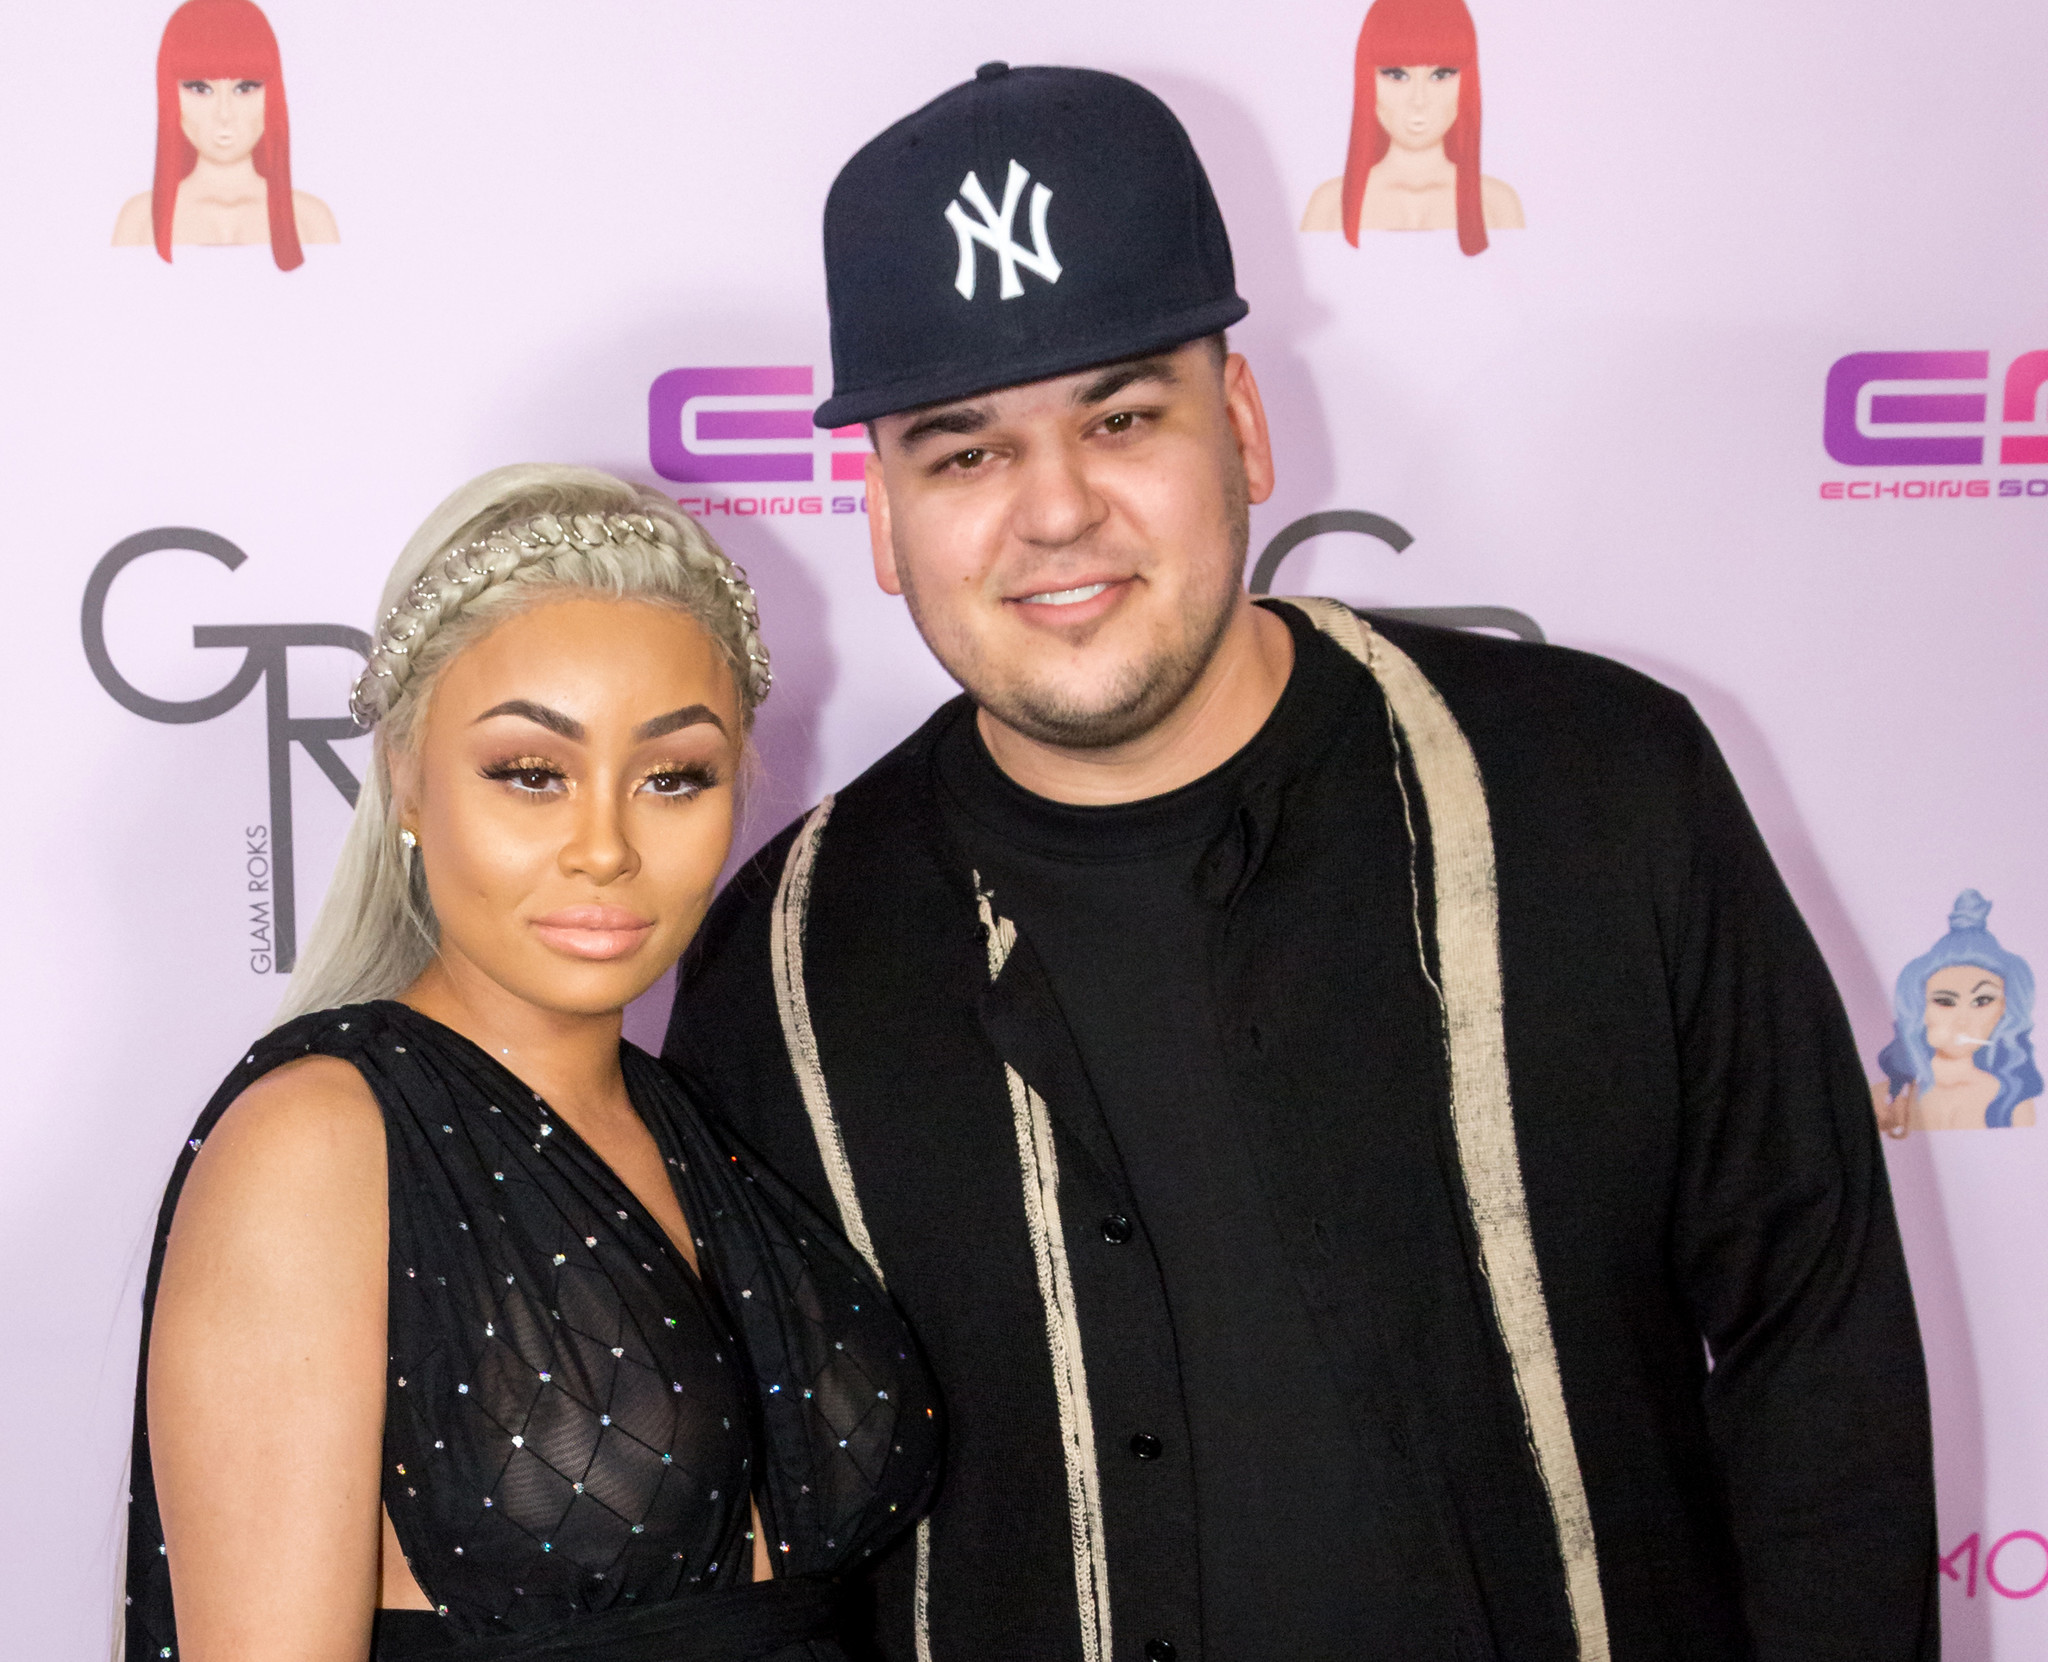 Blac Chyna asks judge to reject Rob Kardashian's 'baseless' lawsuit alleging iPhone cord attack